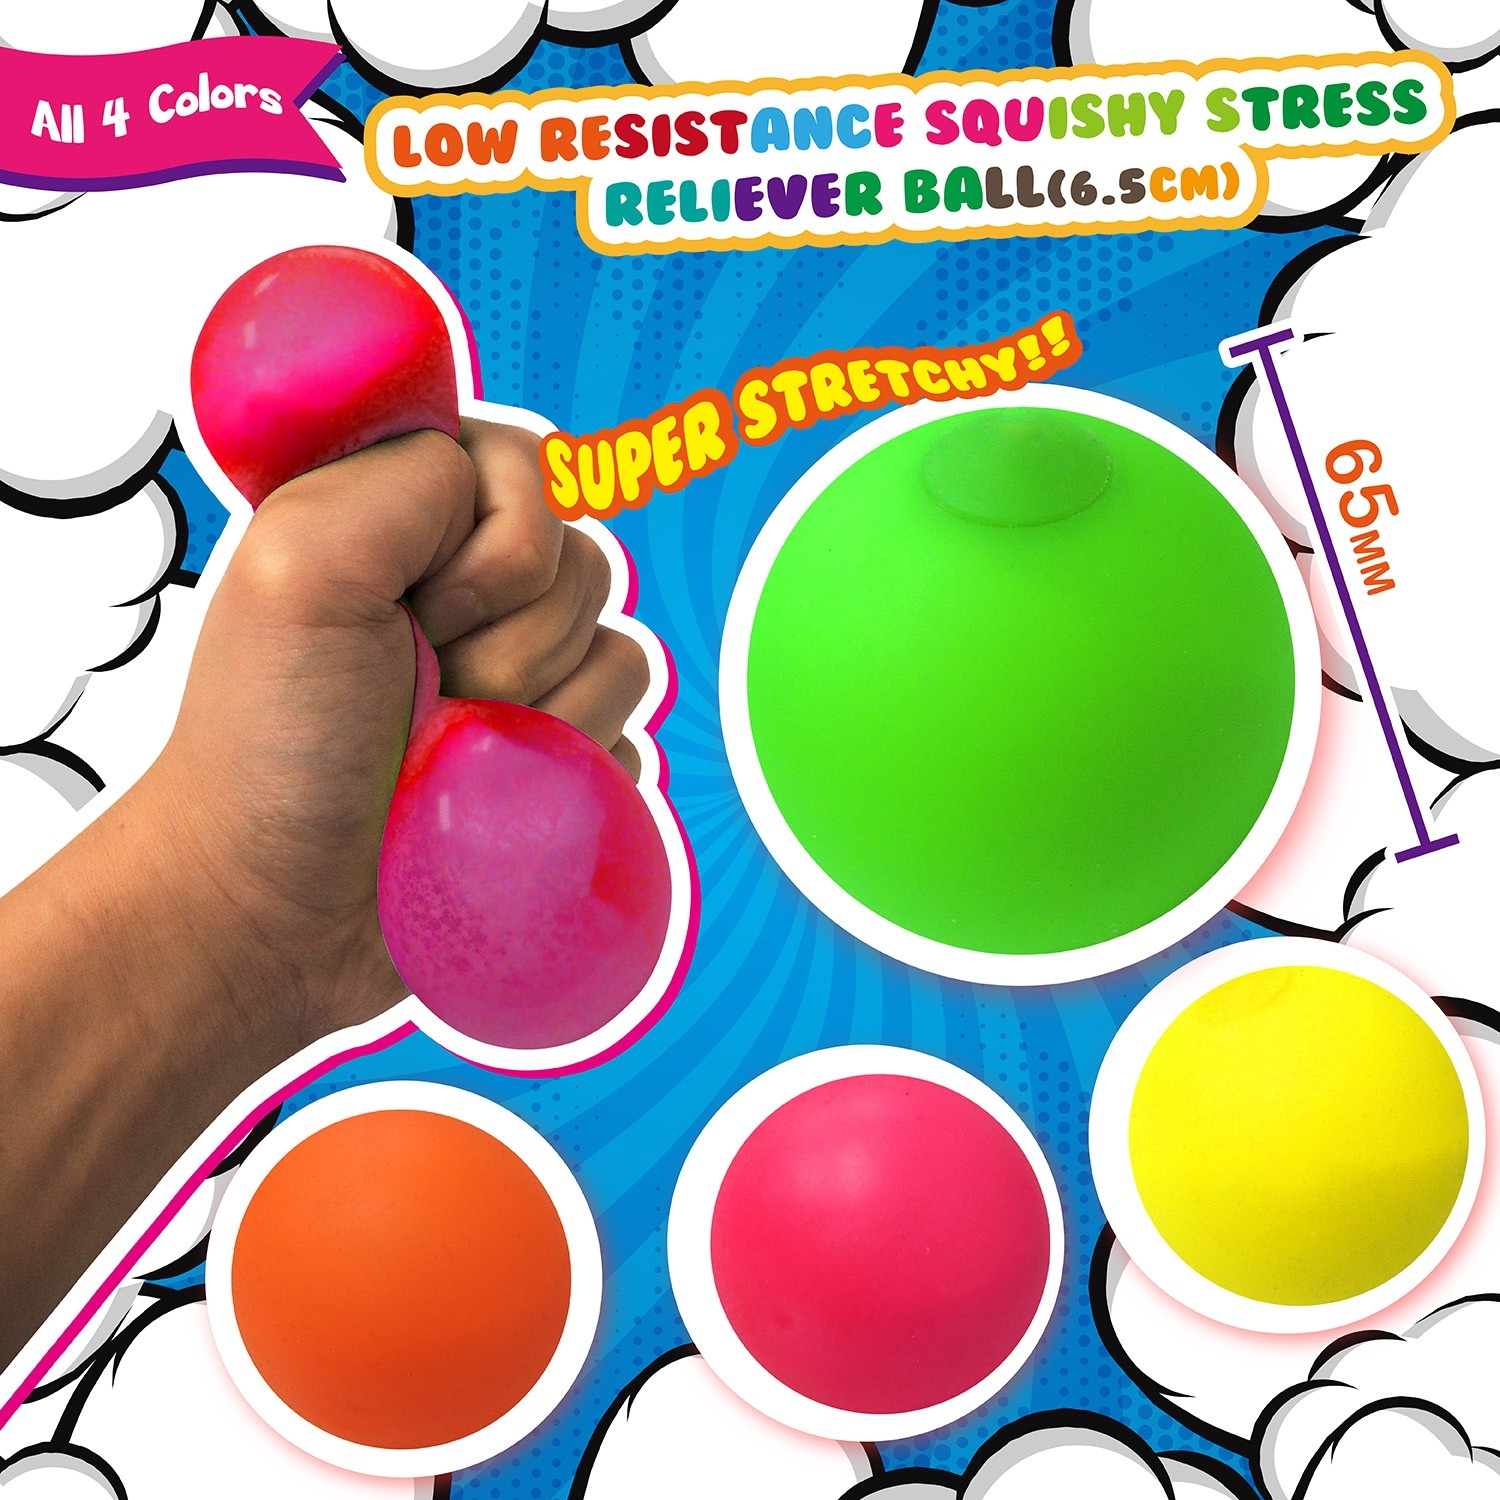 Low Resistance Squishy Stress Reliever Ball (6.5cm)